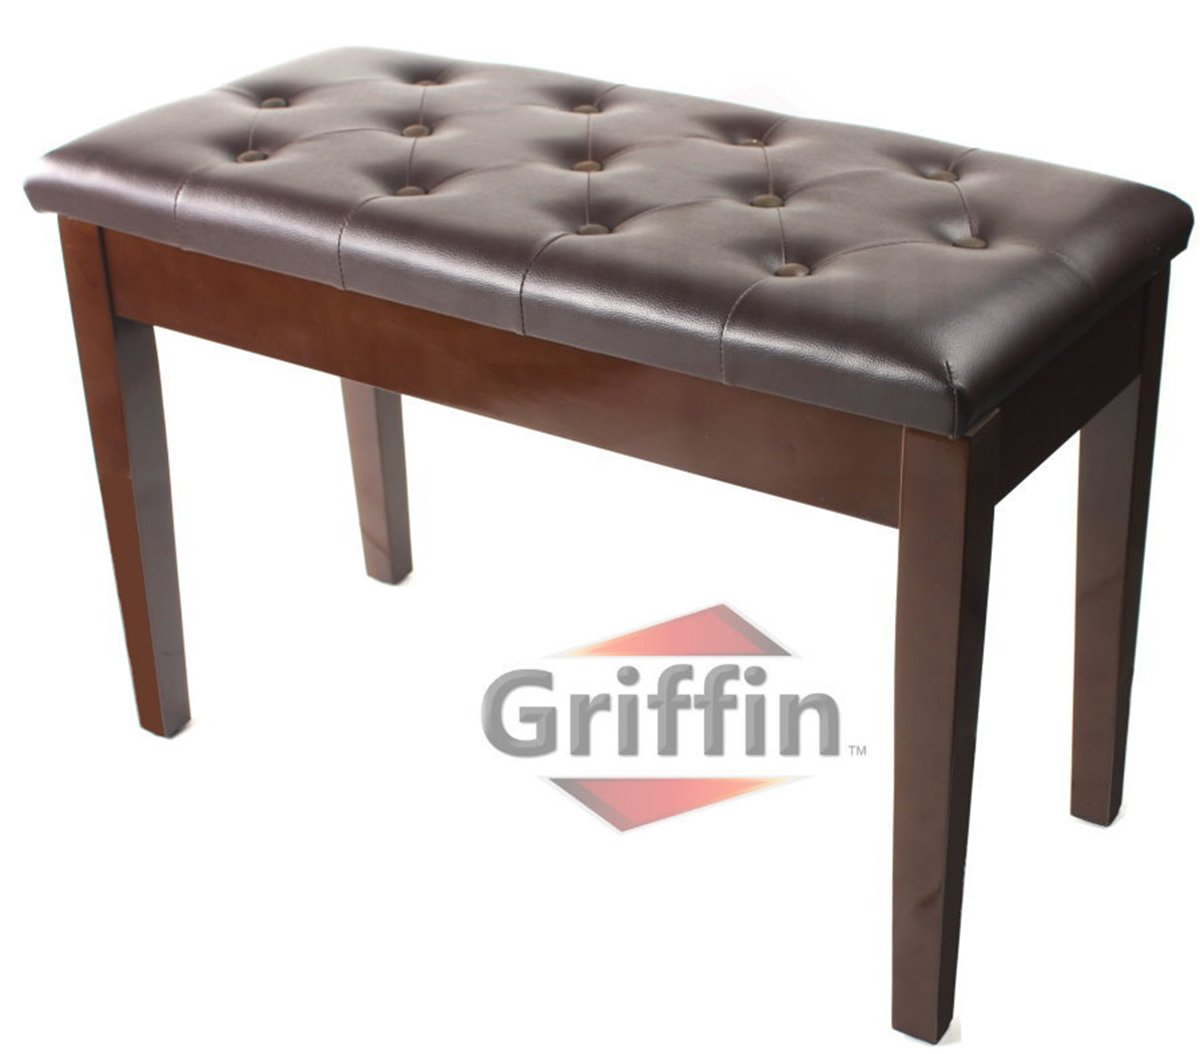 Amazon.com: Griffin Double Brown Leather Piano Bench – Vintage ...